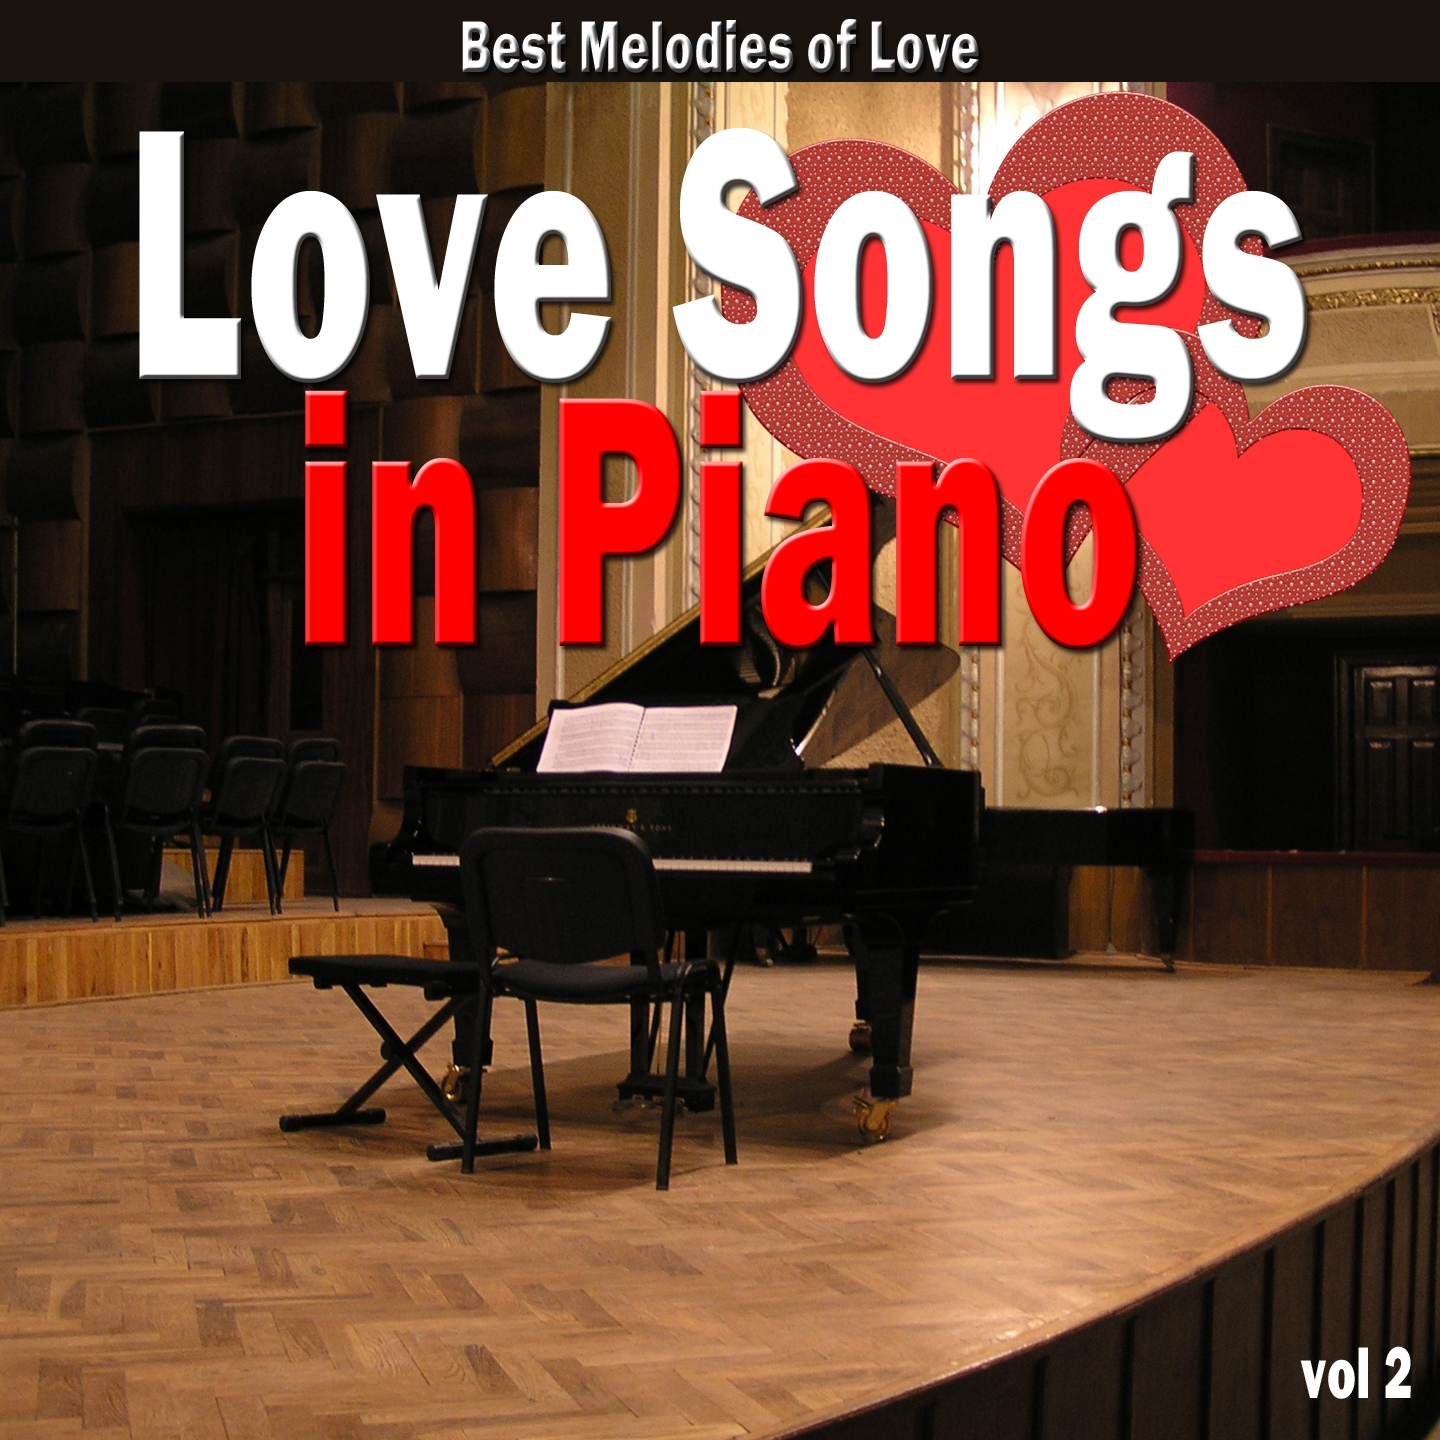 Love Songs in Piano, Vol. 2